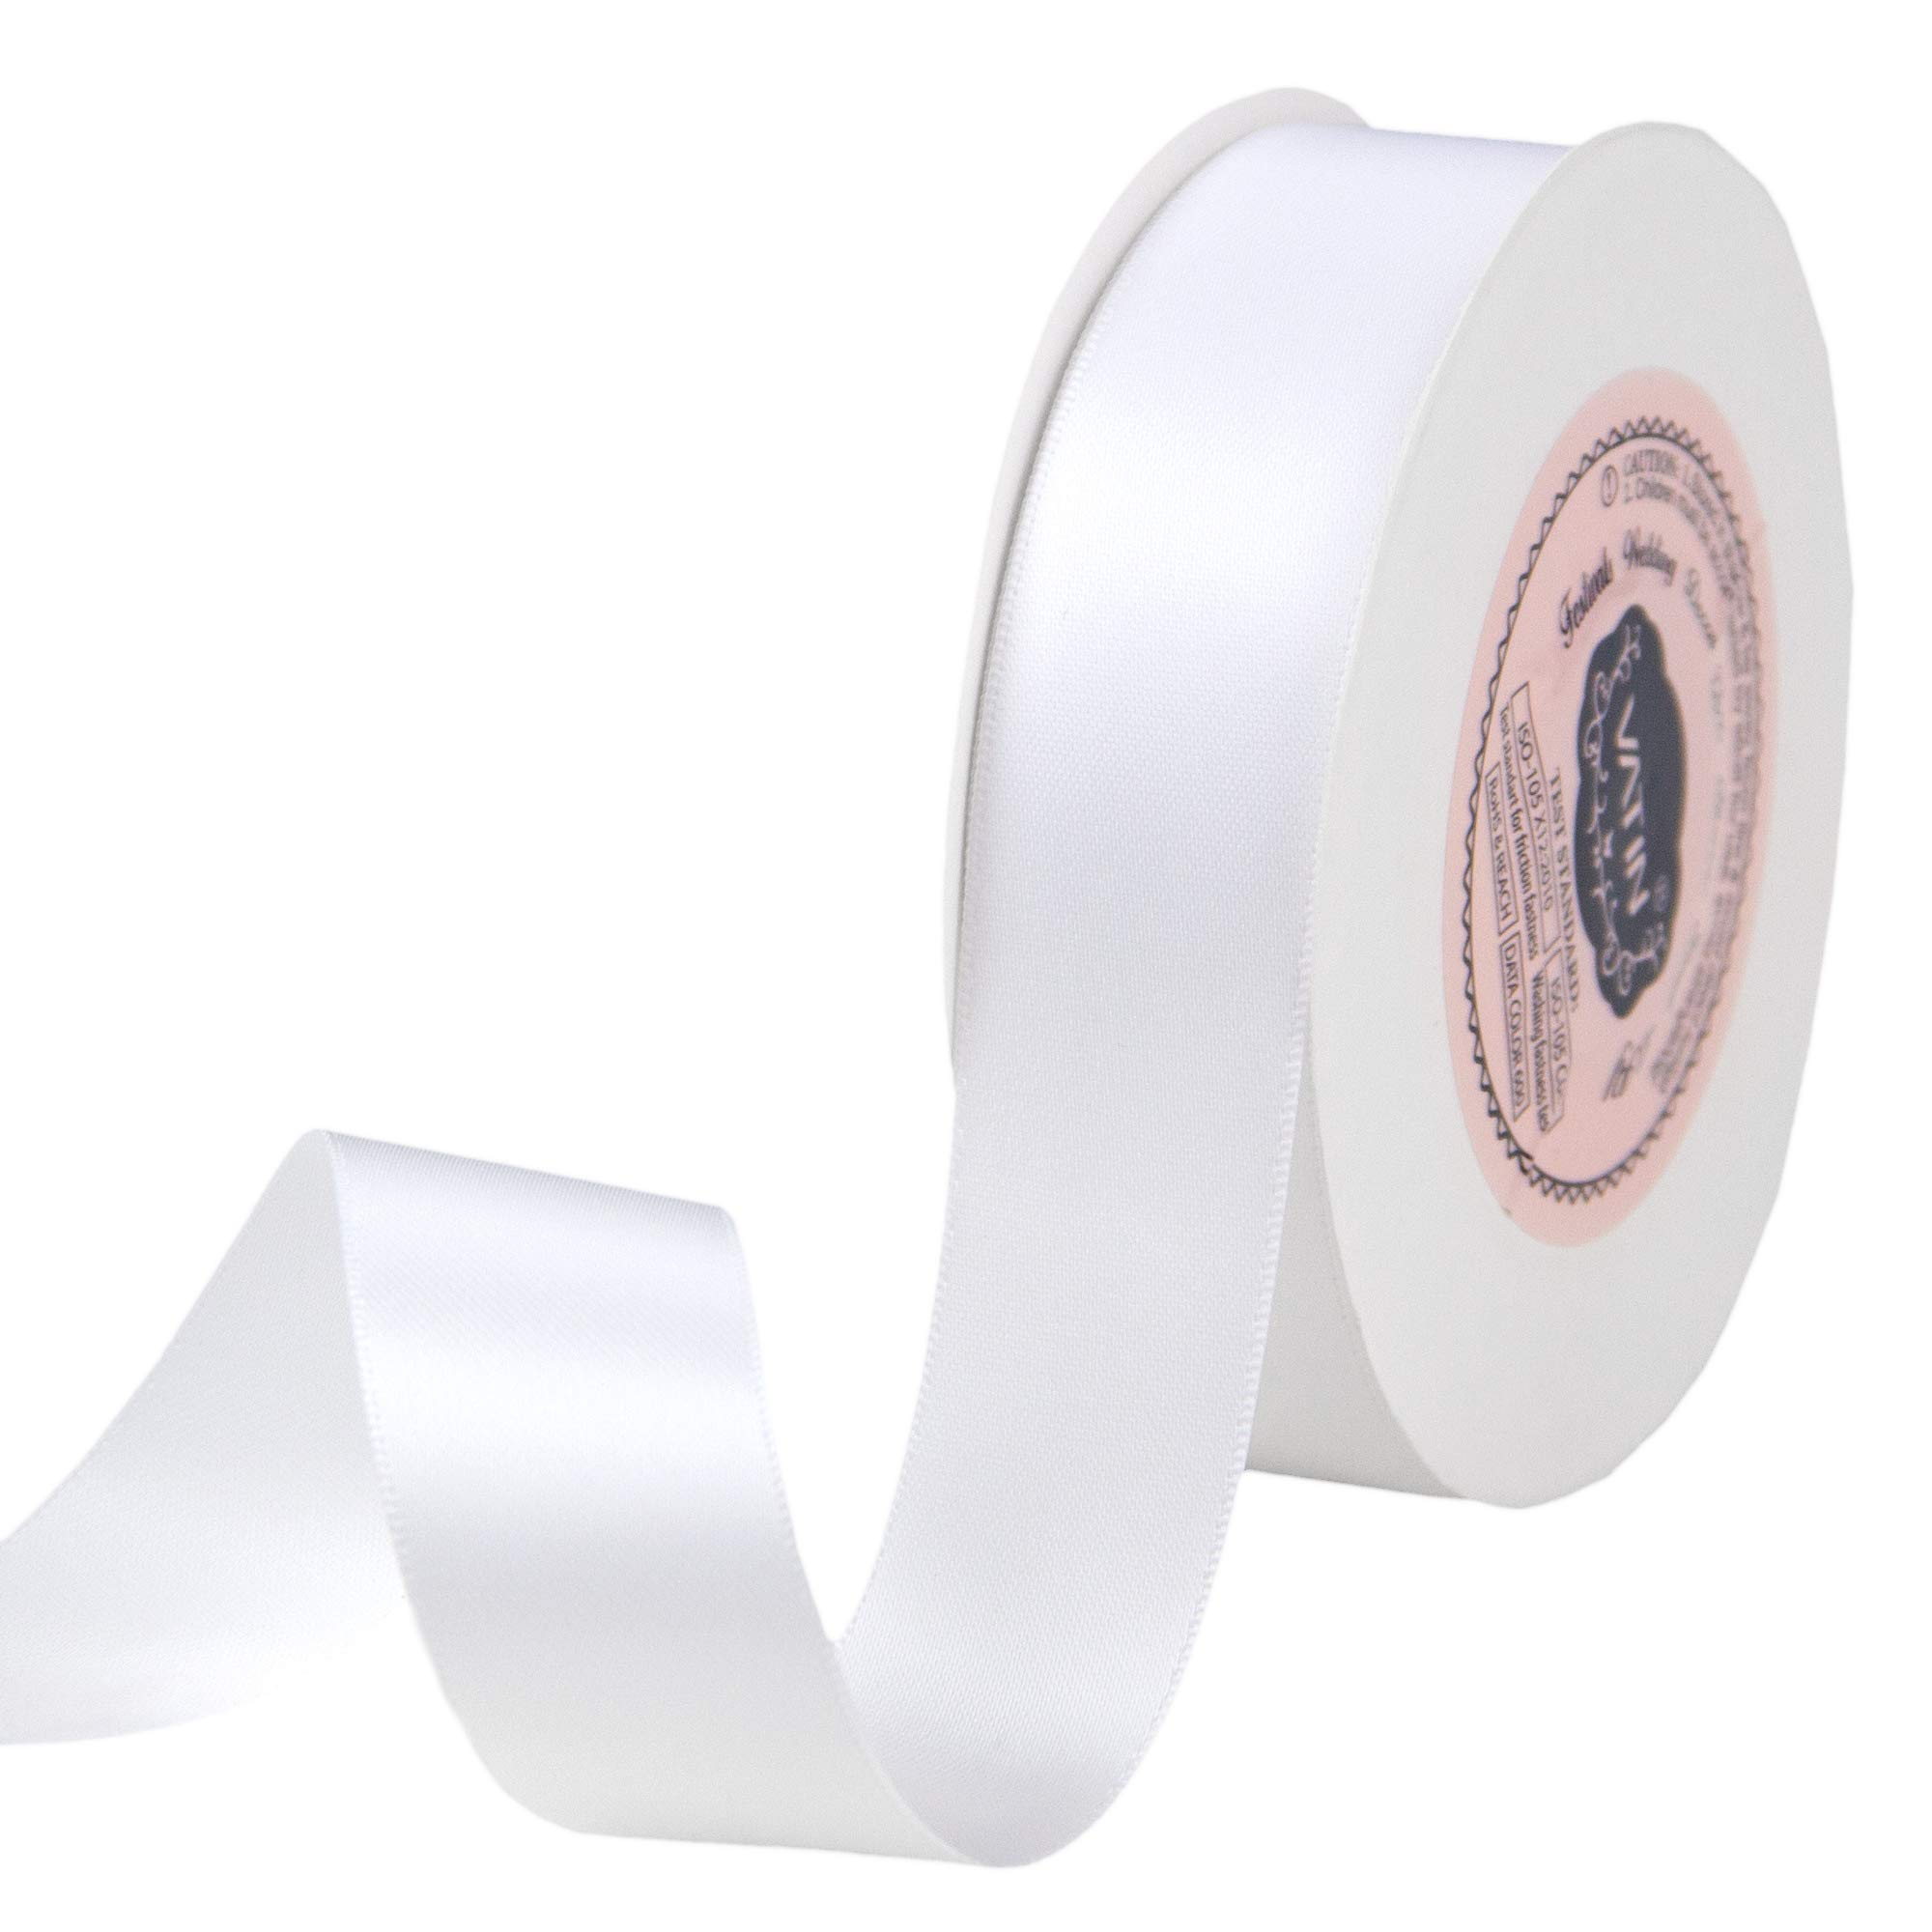 VATIN 1 inch Double Faced Polyester Satin Ribbon White - 25 Yard Spool, Perfect for Wedding, Wreath, Baby Shower,Packing and Other Projects.